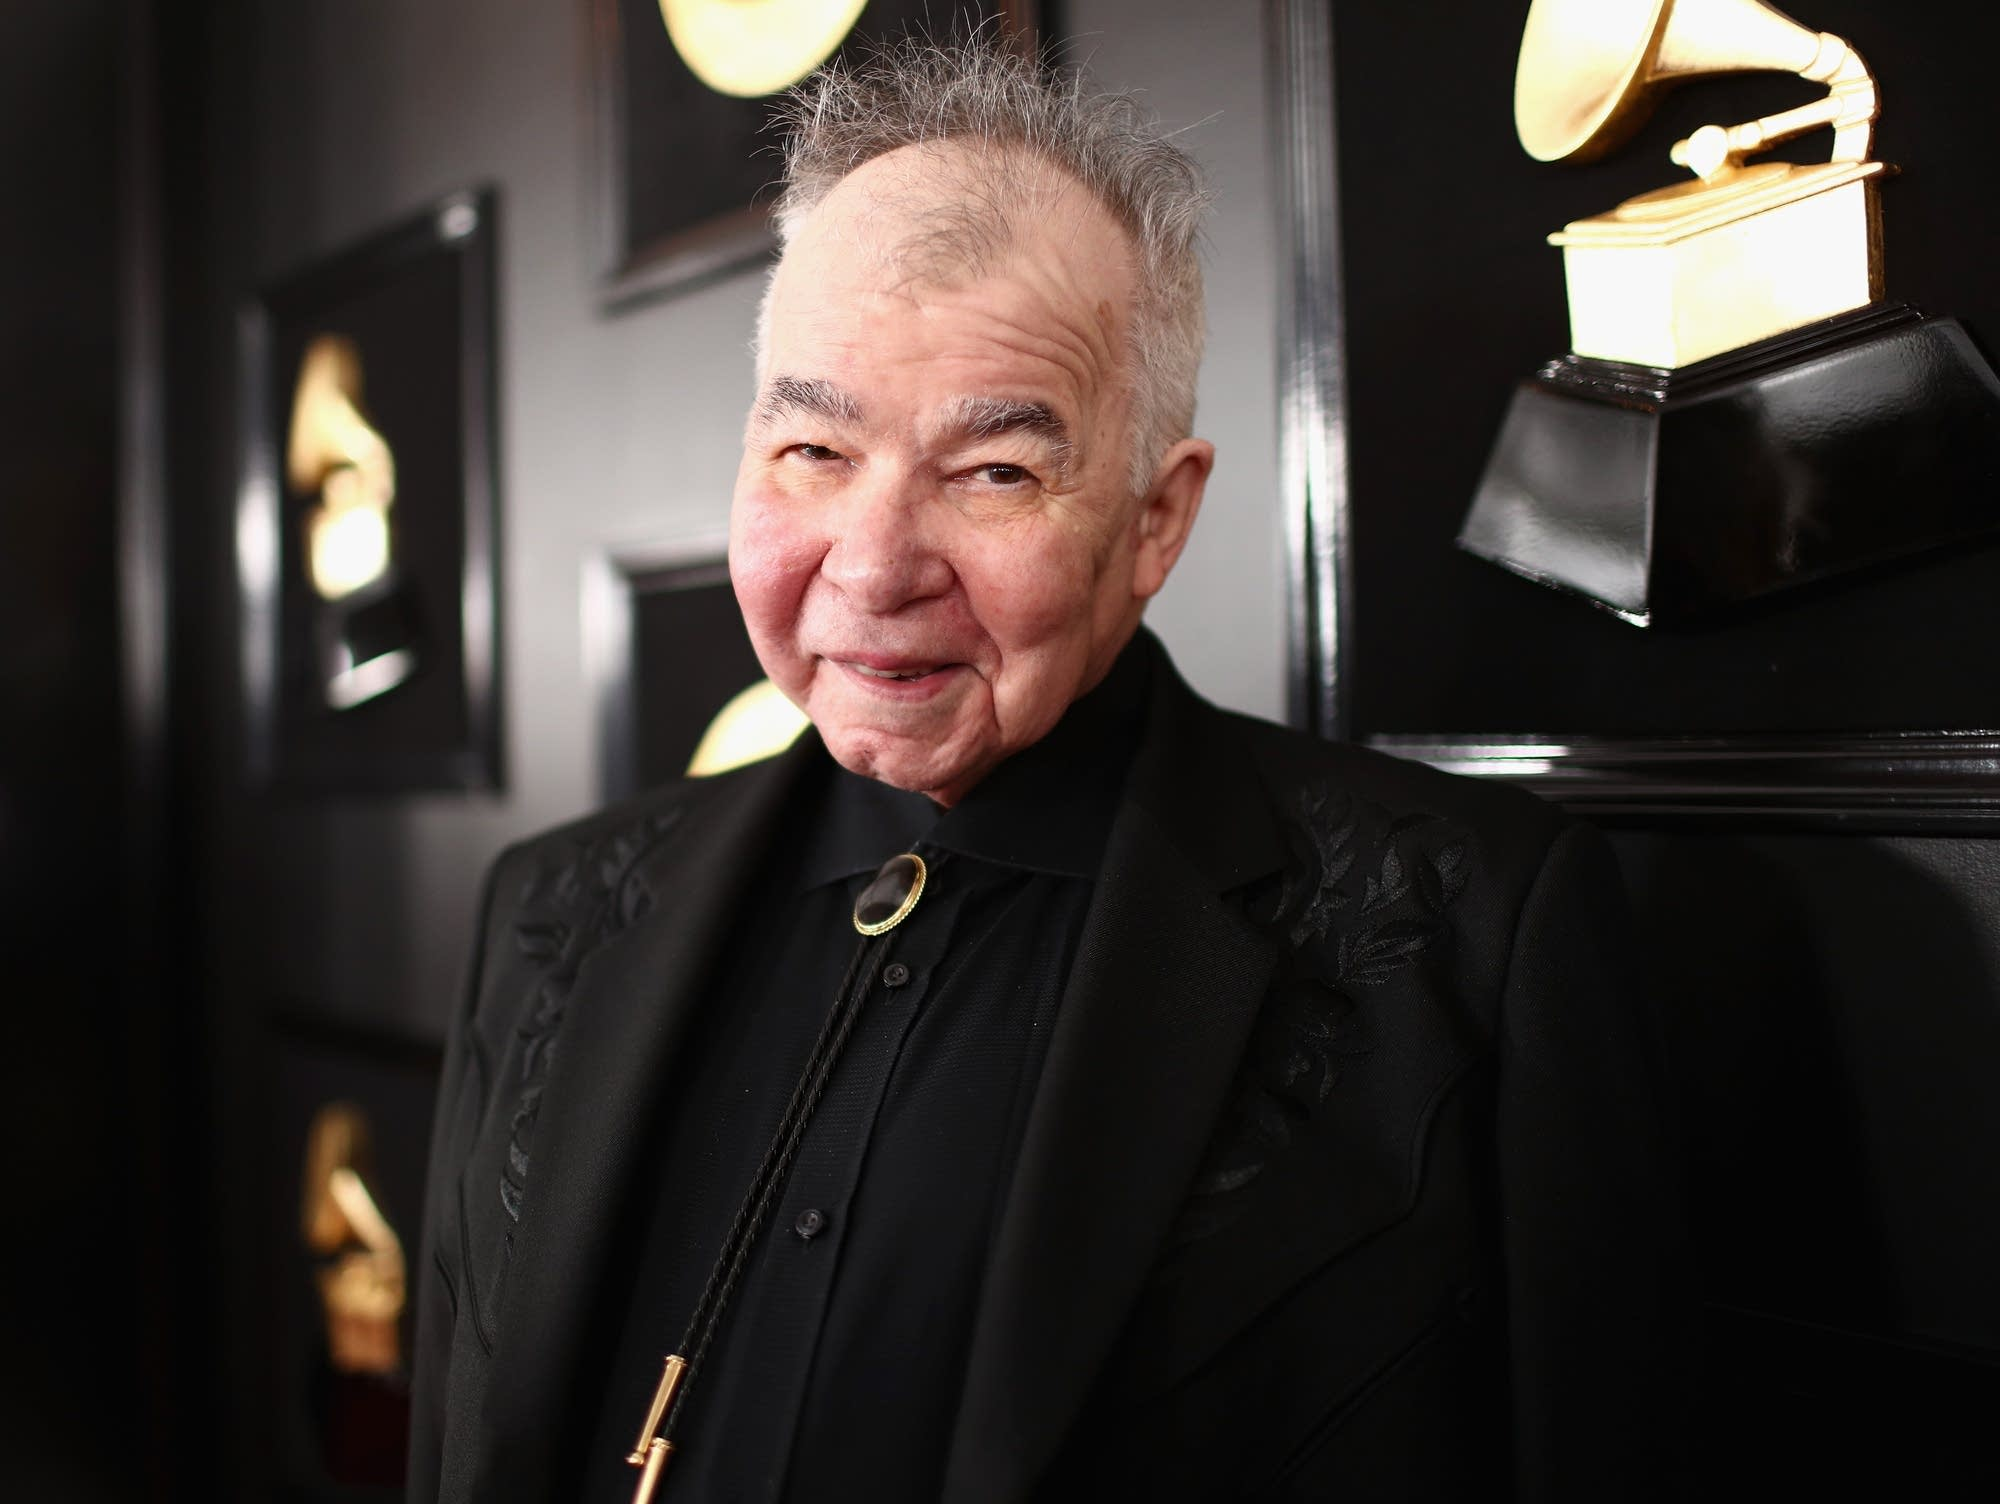 John Prine at the Grammys, 2019.